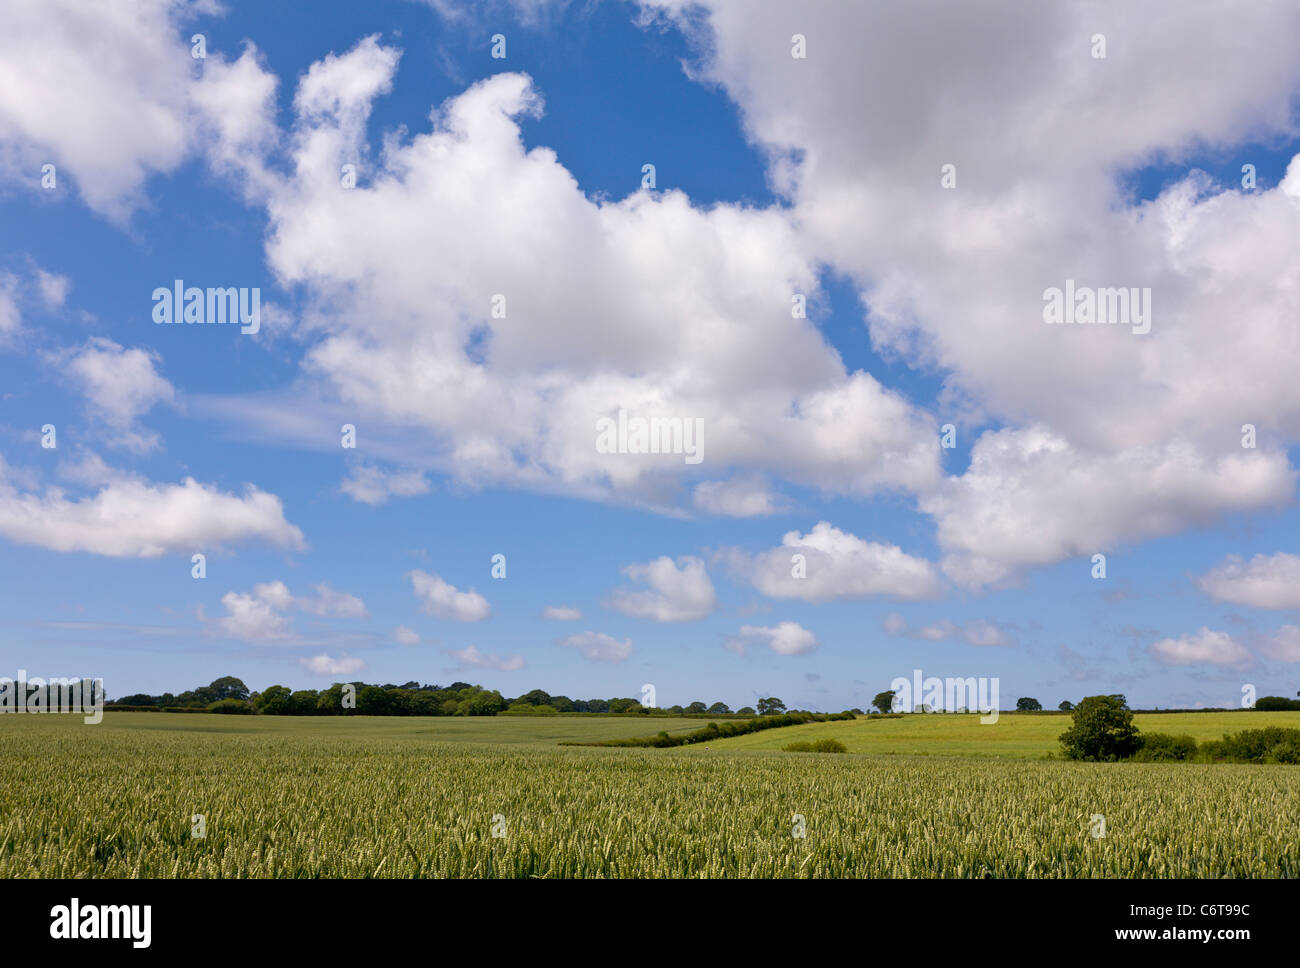 Wheat field on sunny day - Stock Image